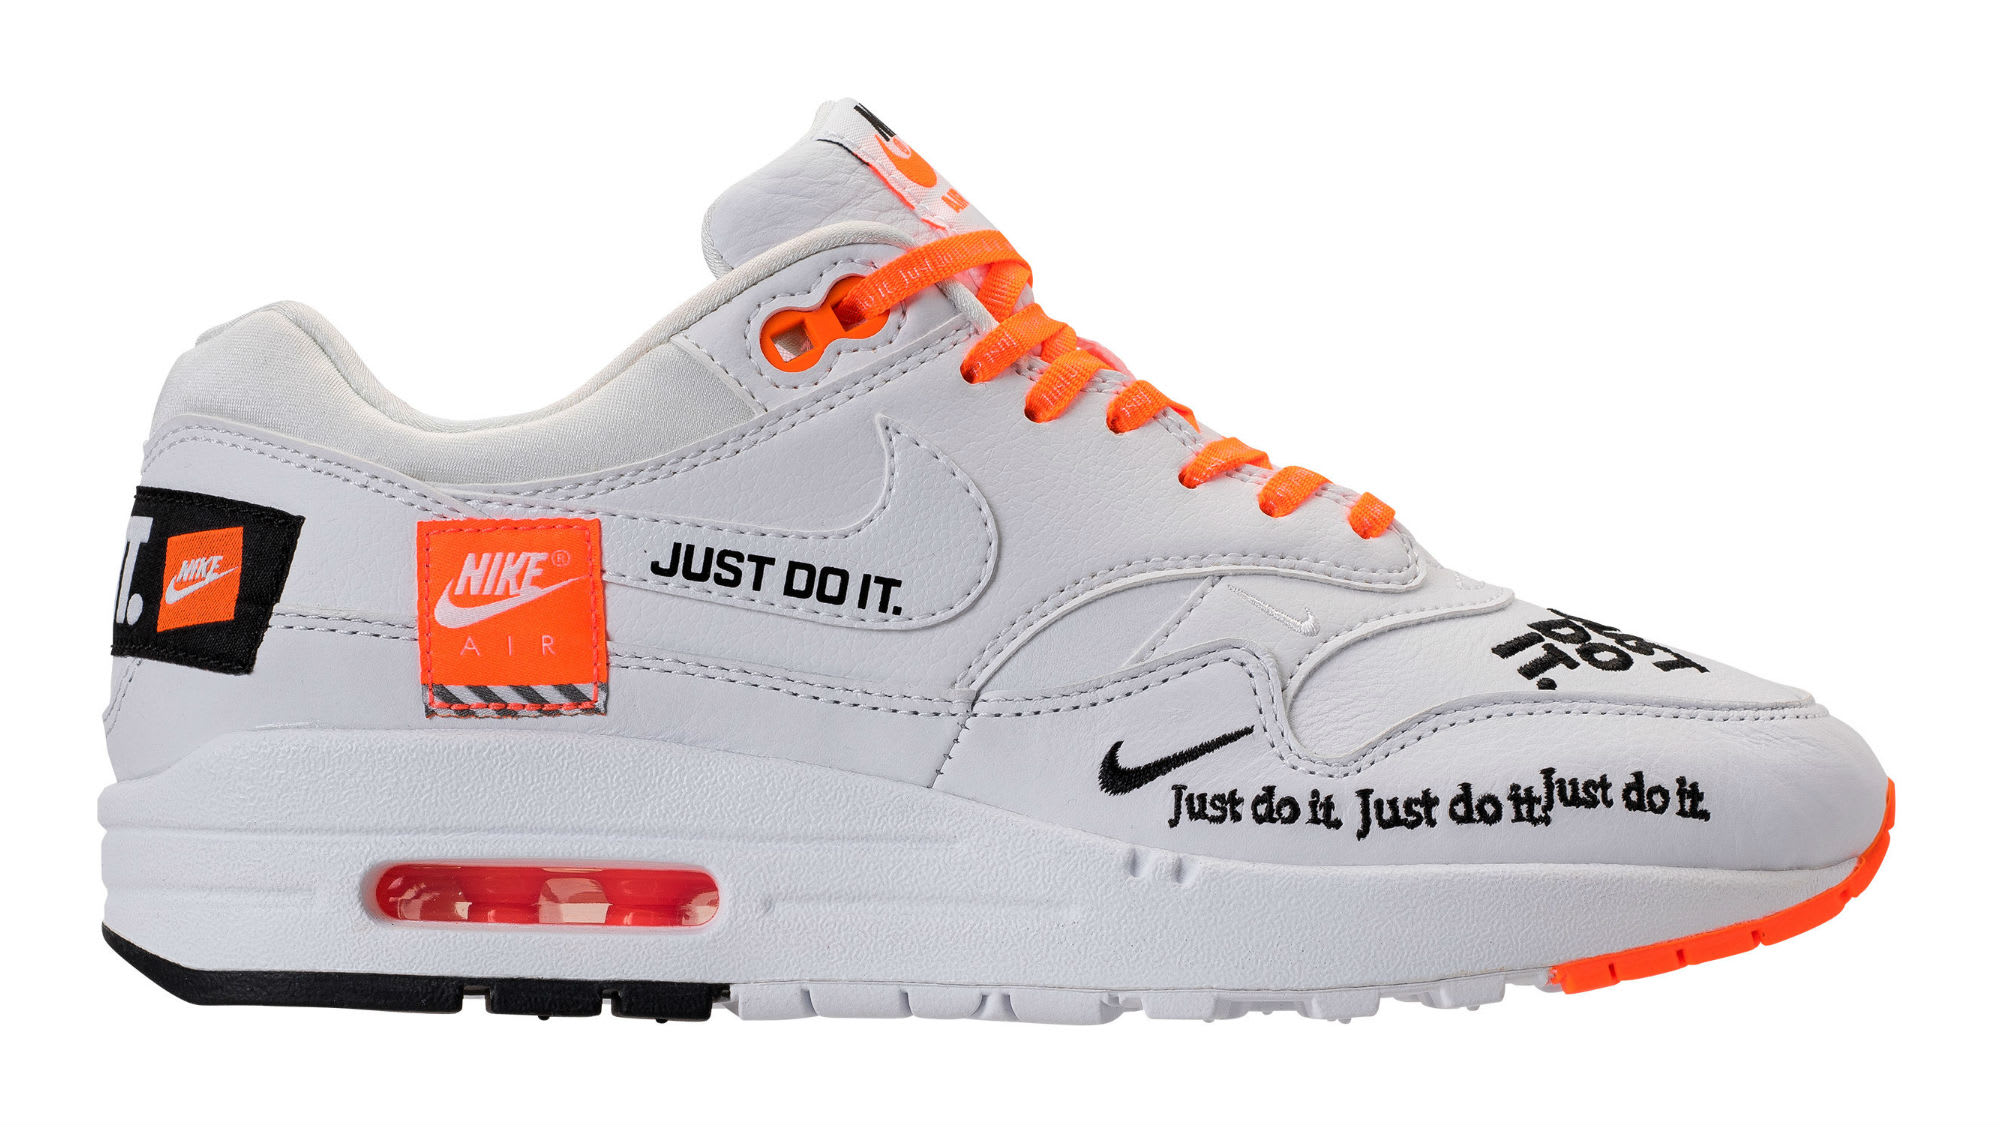 Nike Air Max 1 Just Do It White Release Date 917691-100 Profile